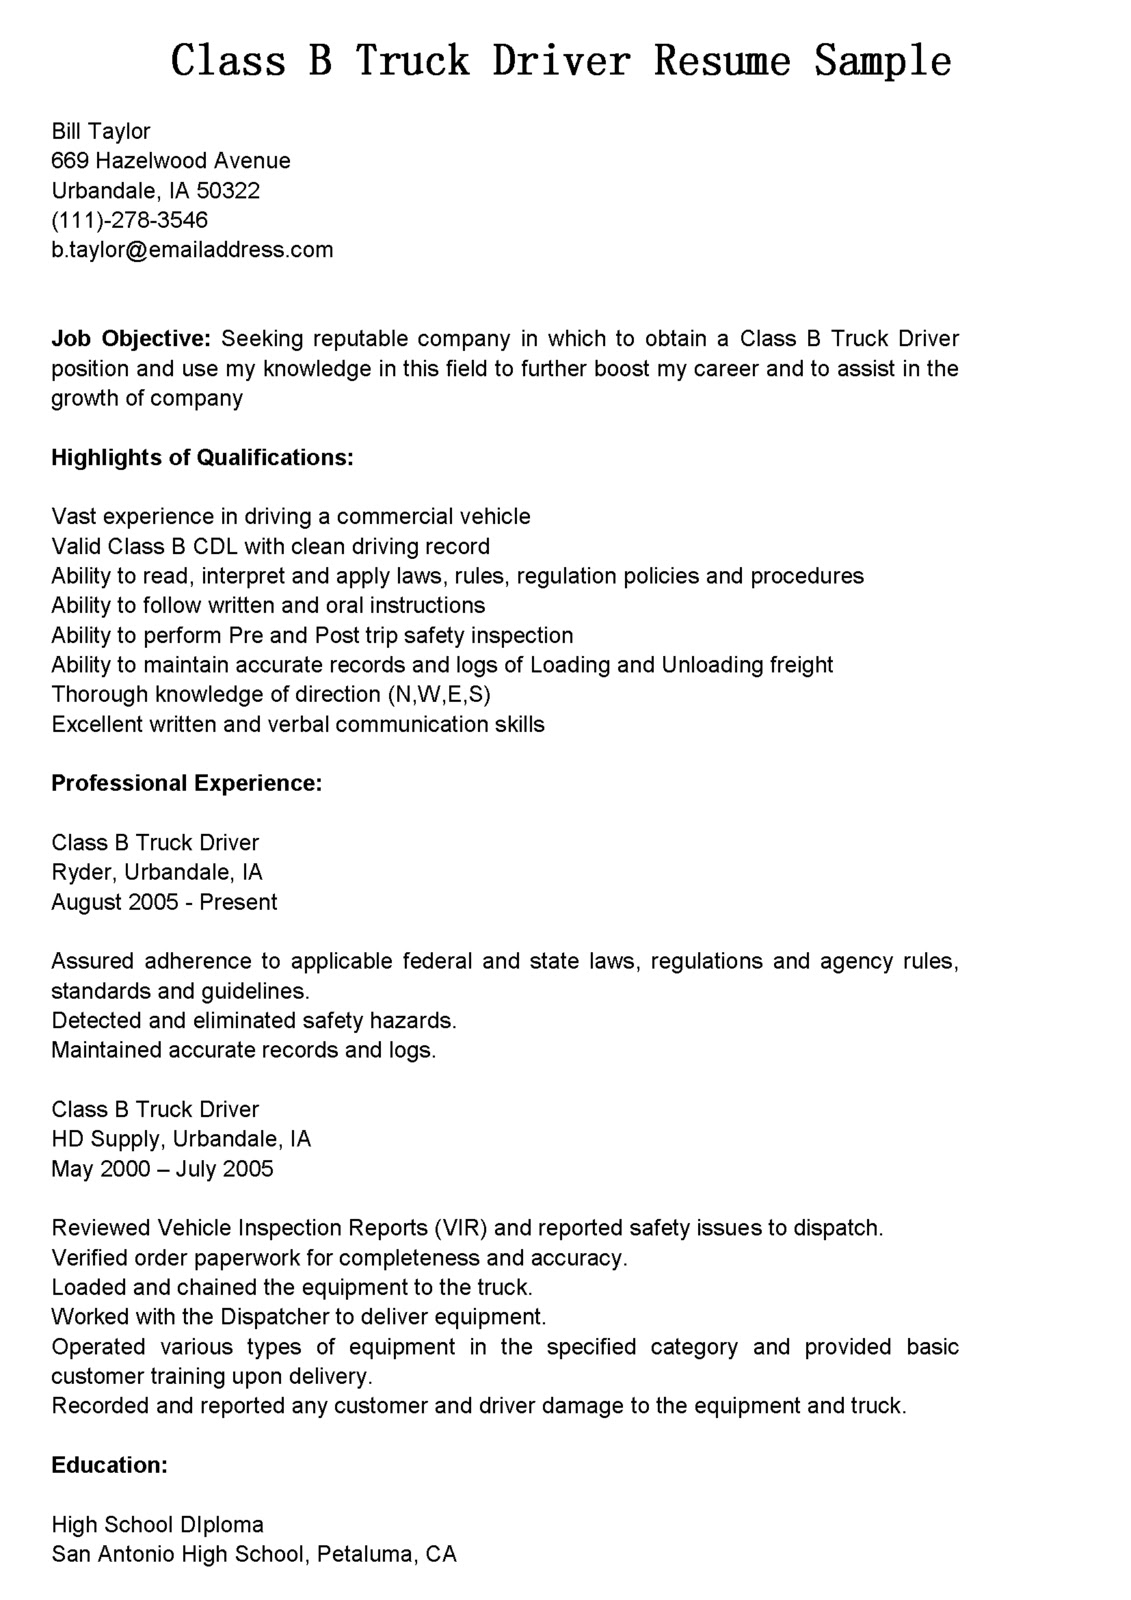 shuttle driver resume - Sample Resume For Shuttle Bus Driver